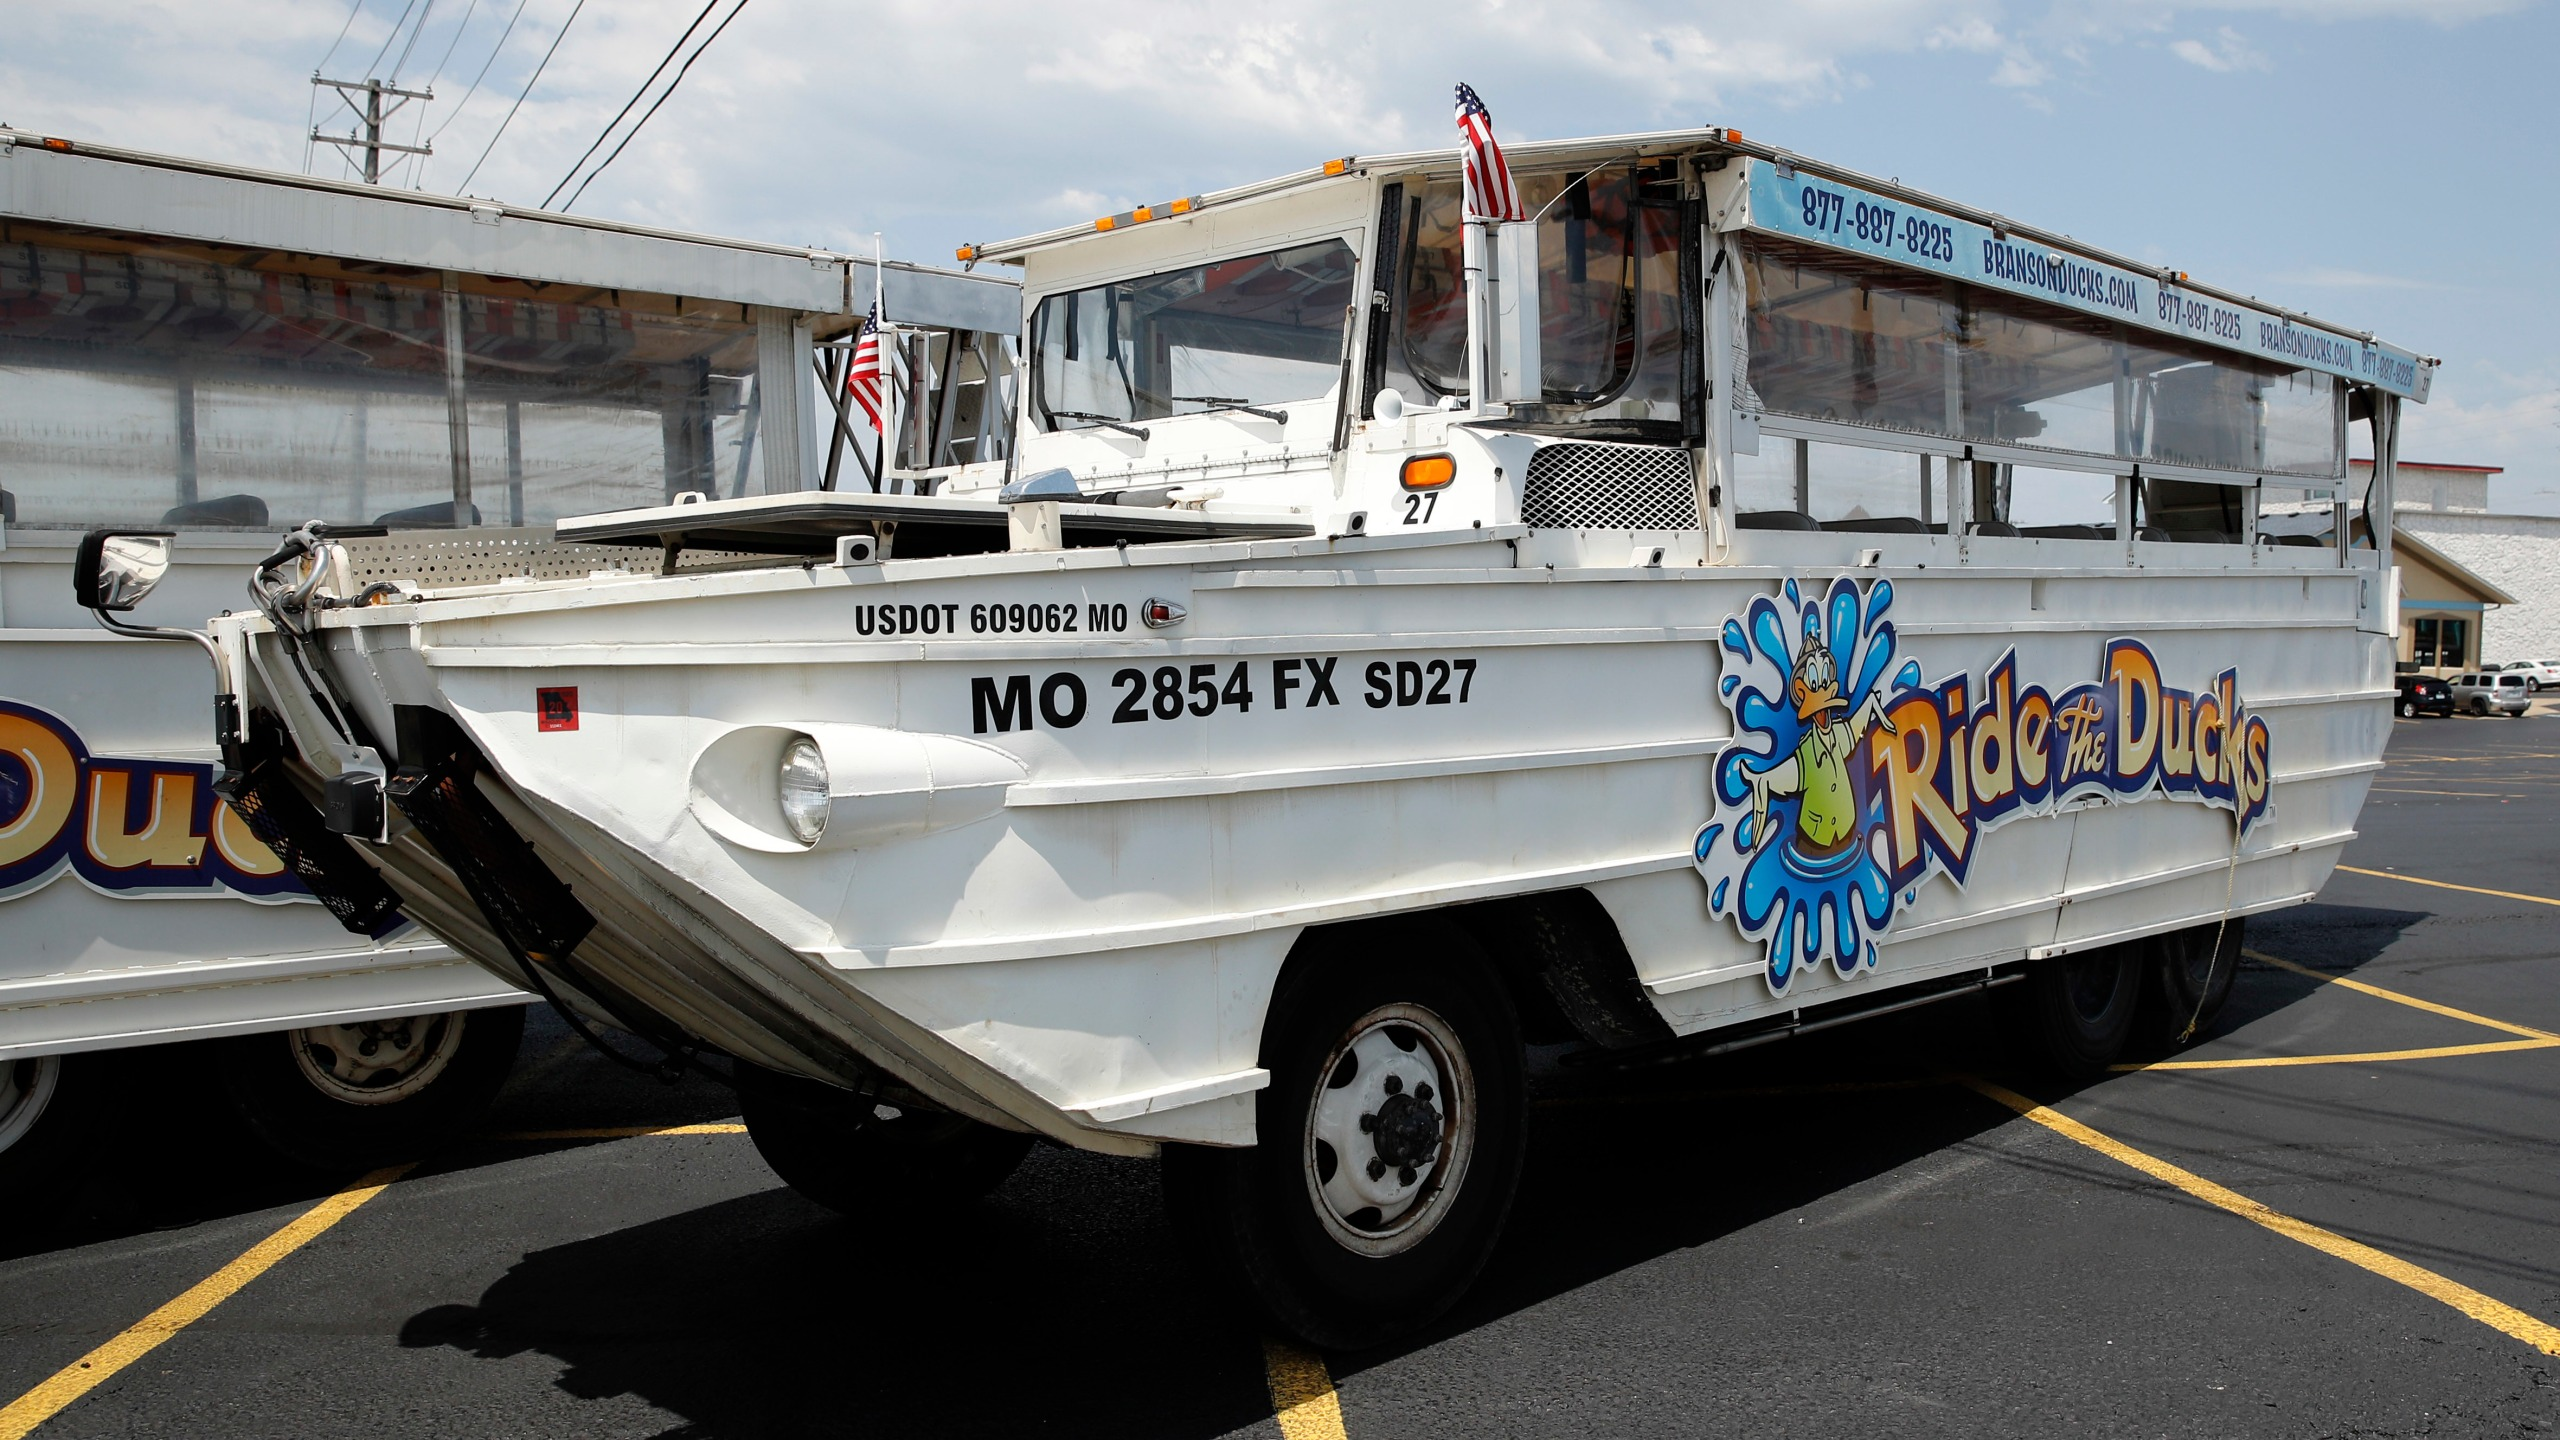 Missouri_Boat_Accident_Duck_Boats_43143-159532.jpg03902743